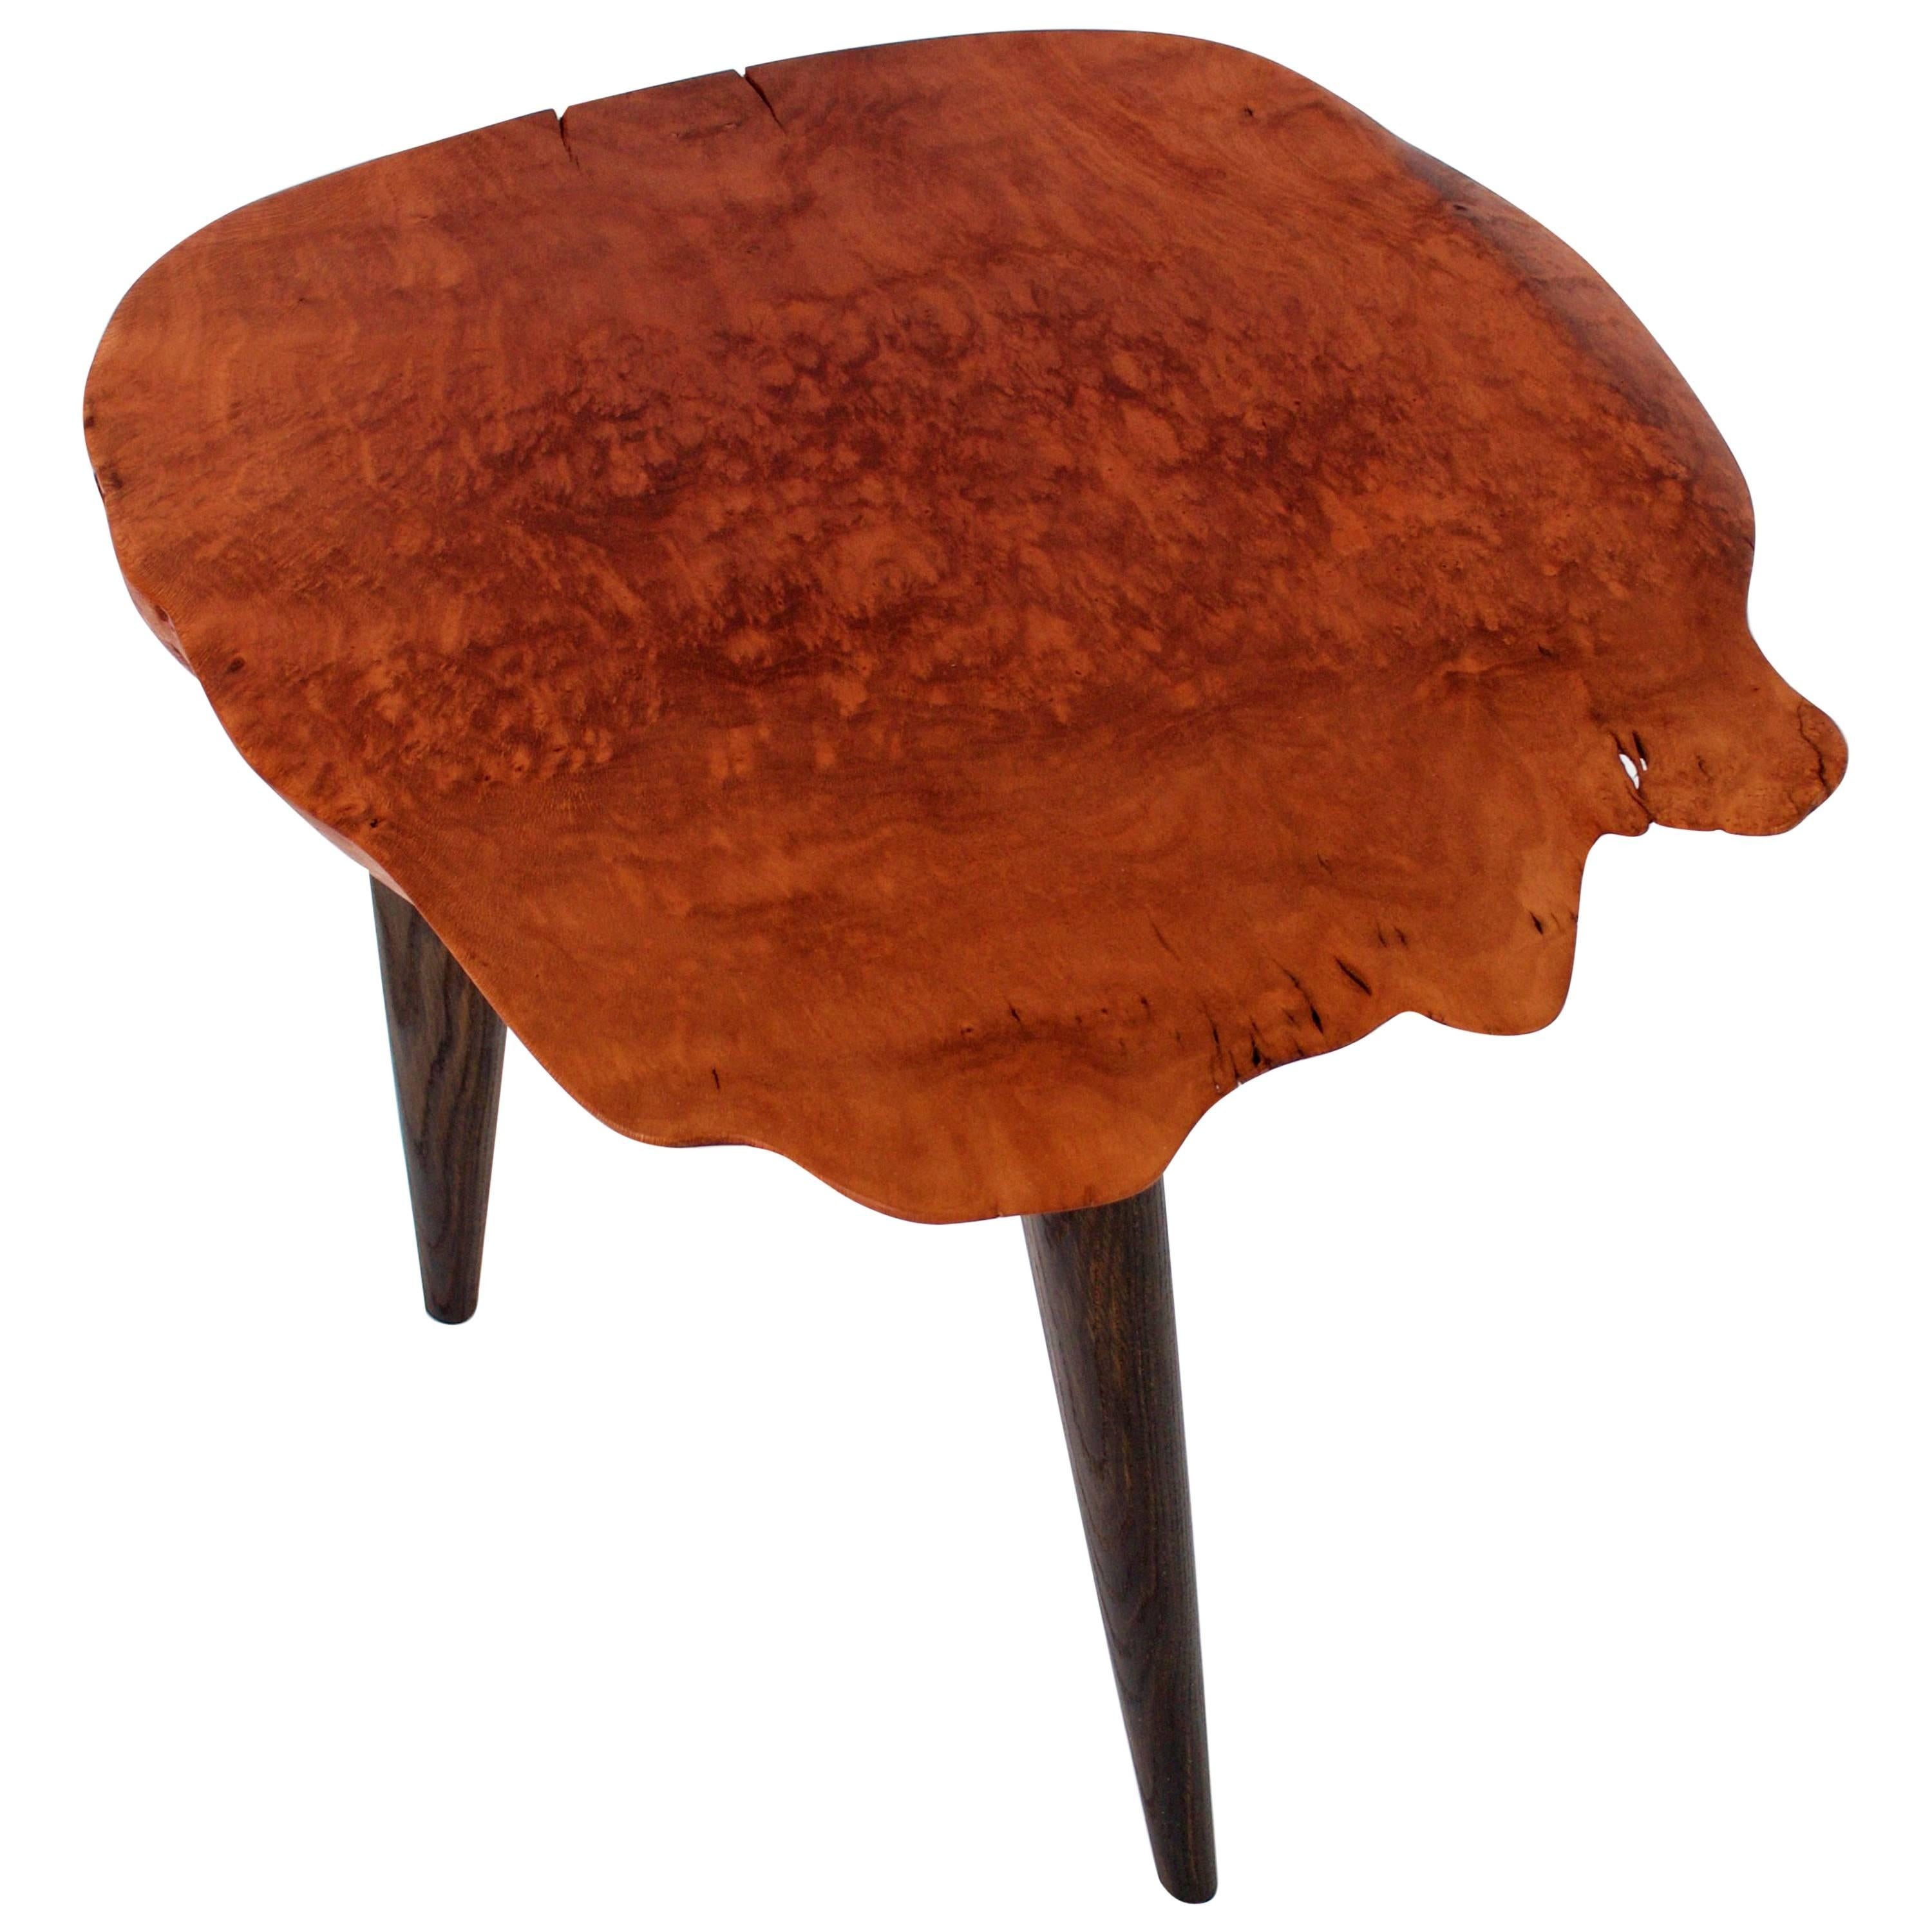 Unique Signed Sycamore Table by Jörg Pietschmann